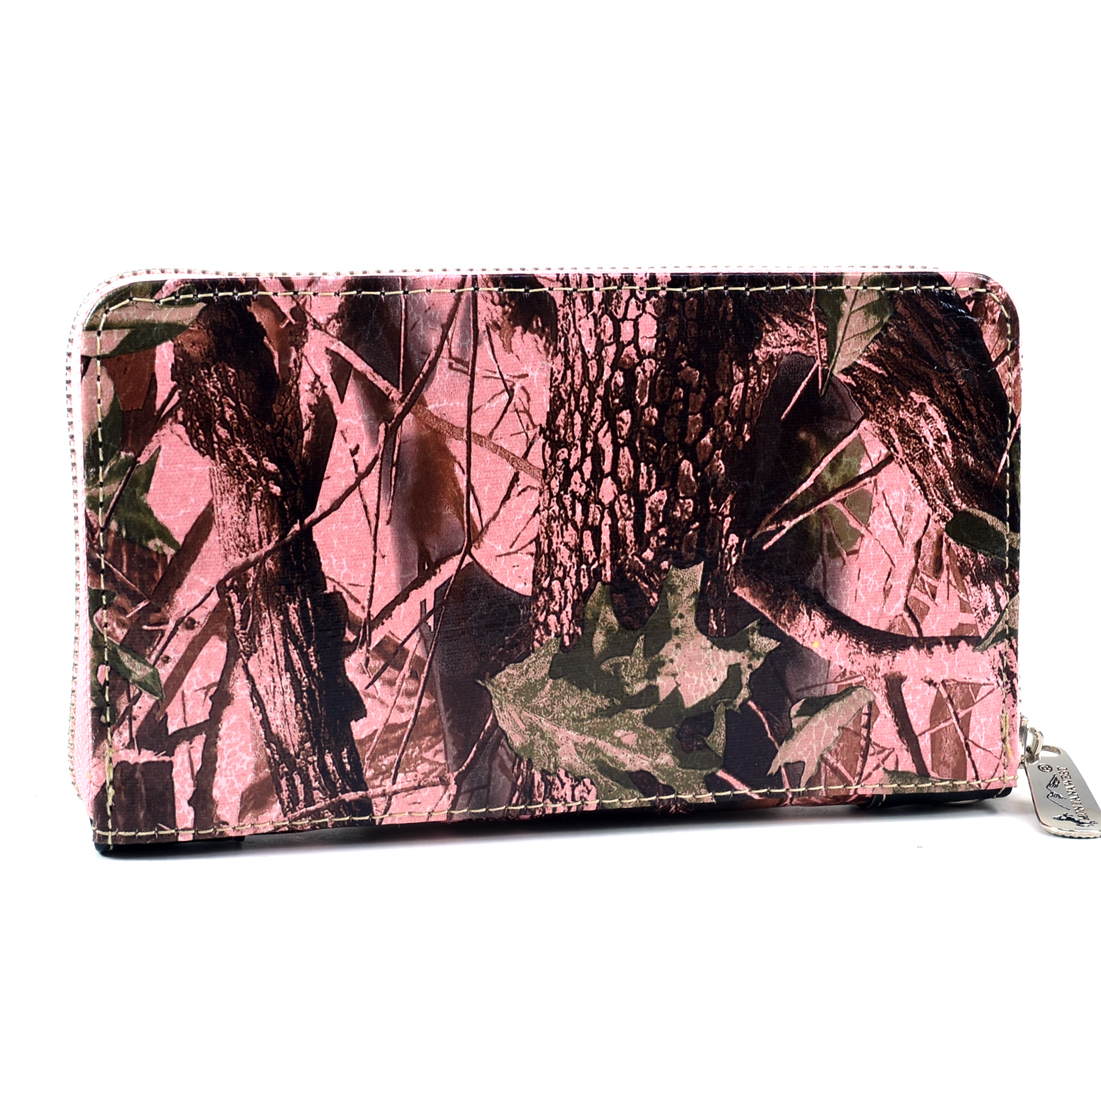 Montana West Cross Accent Ostrich Textured Western Wallet Studded crystals - Pink